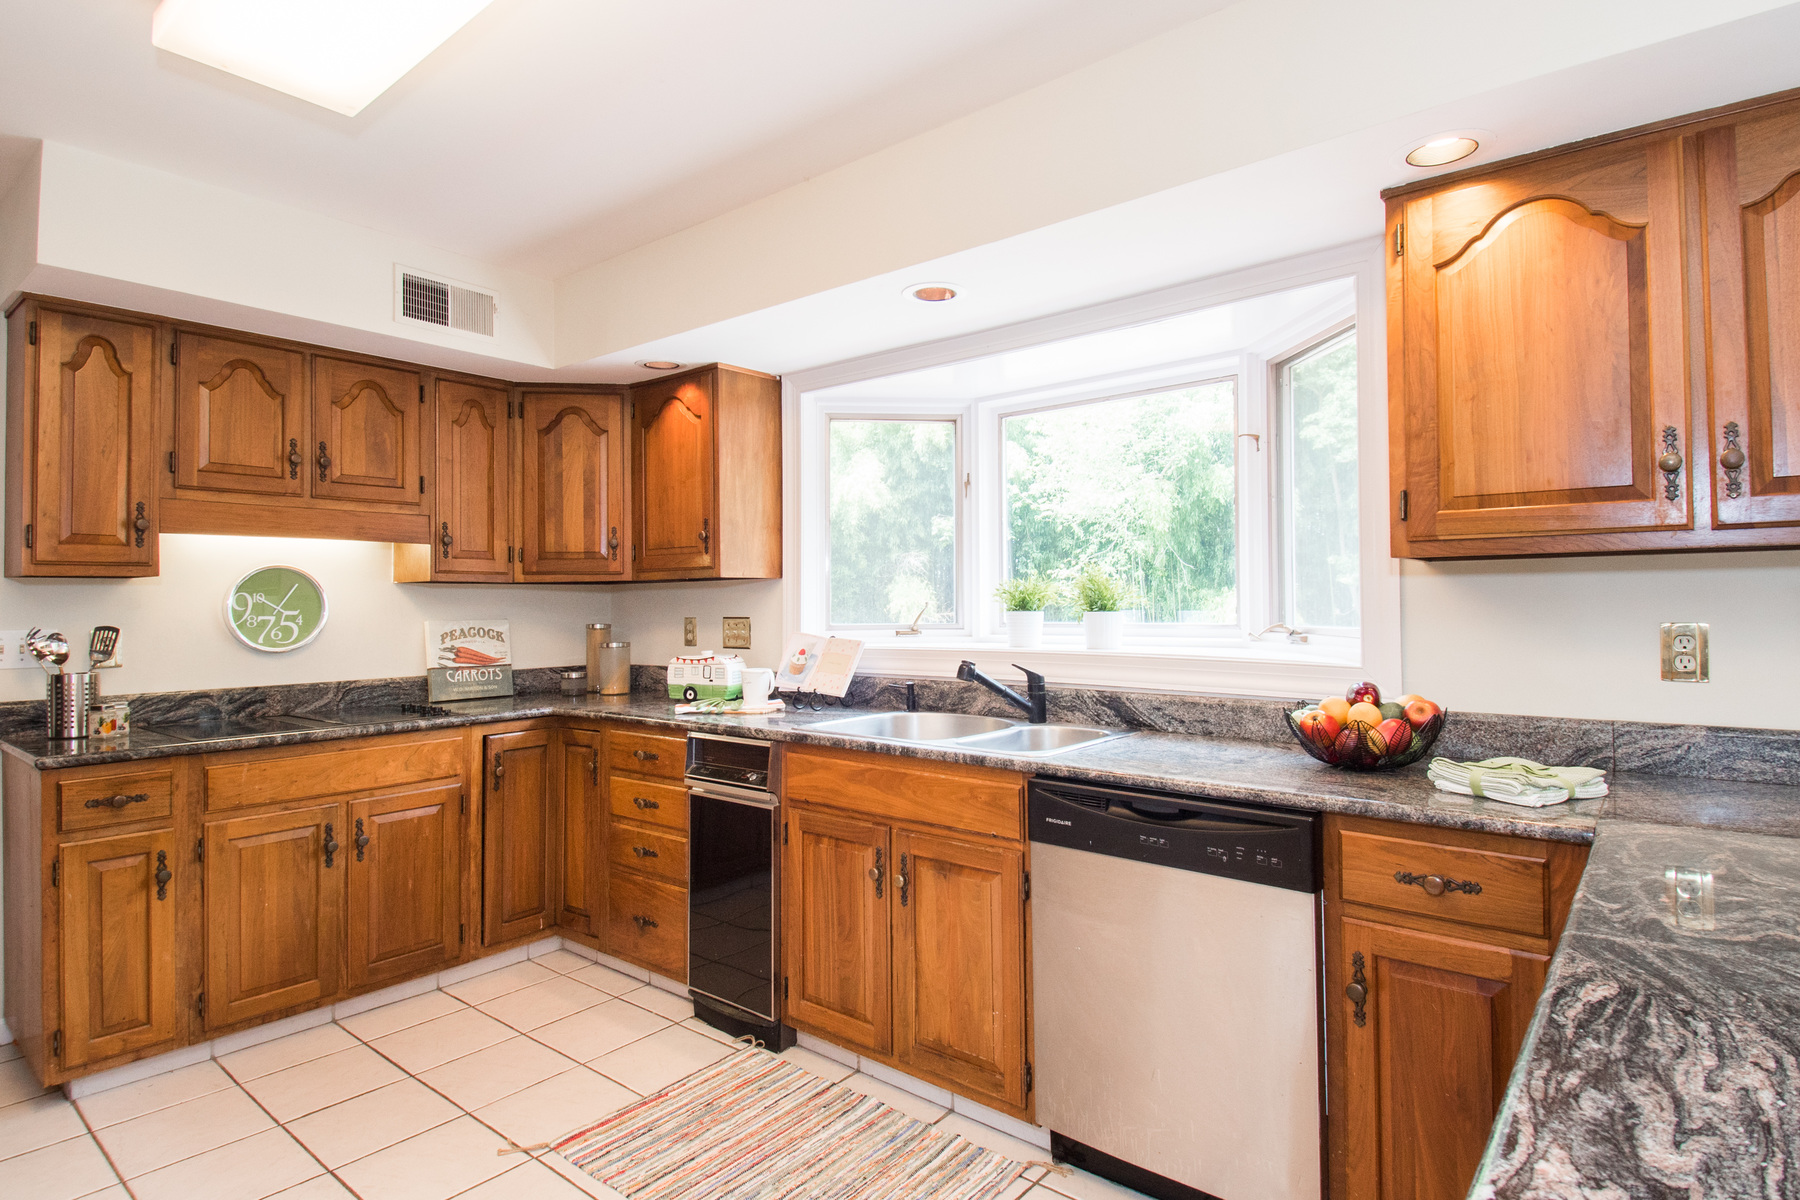 Additional photo for property listing at 576 Stocketts Run Road, Davidsonville 576 Stocketts Run Rd Davidsonville, Maryland 21035 Estados Unidos